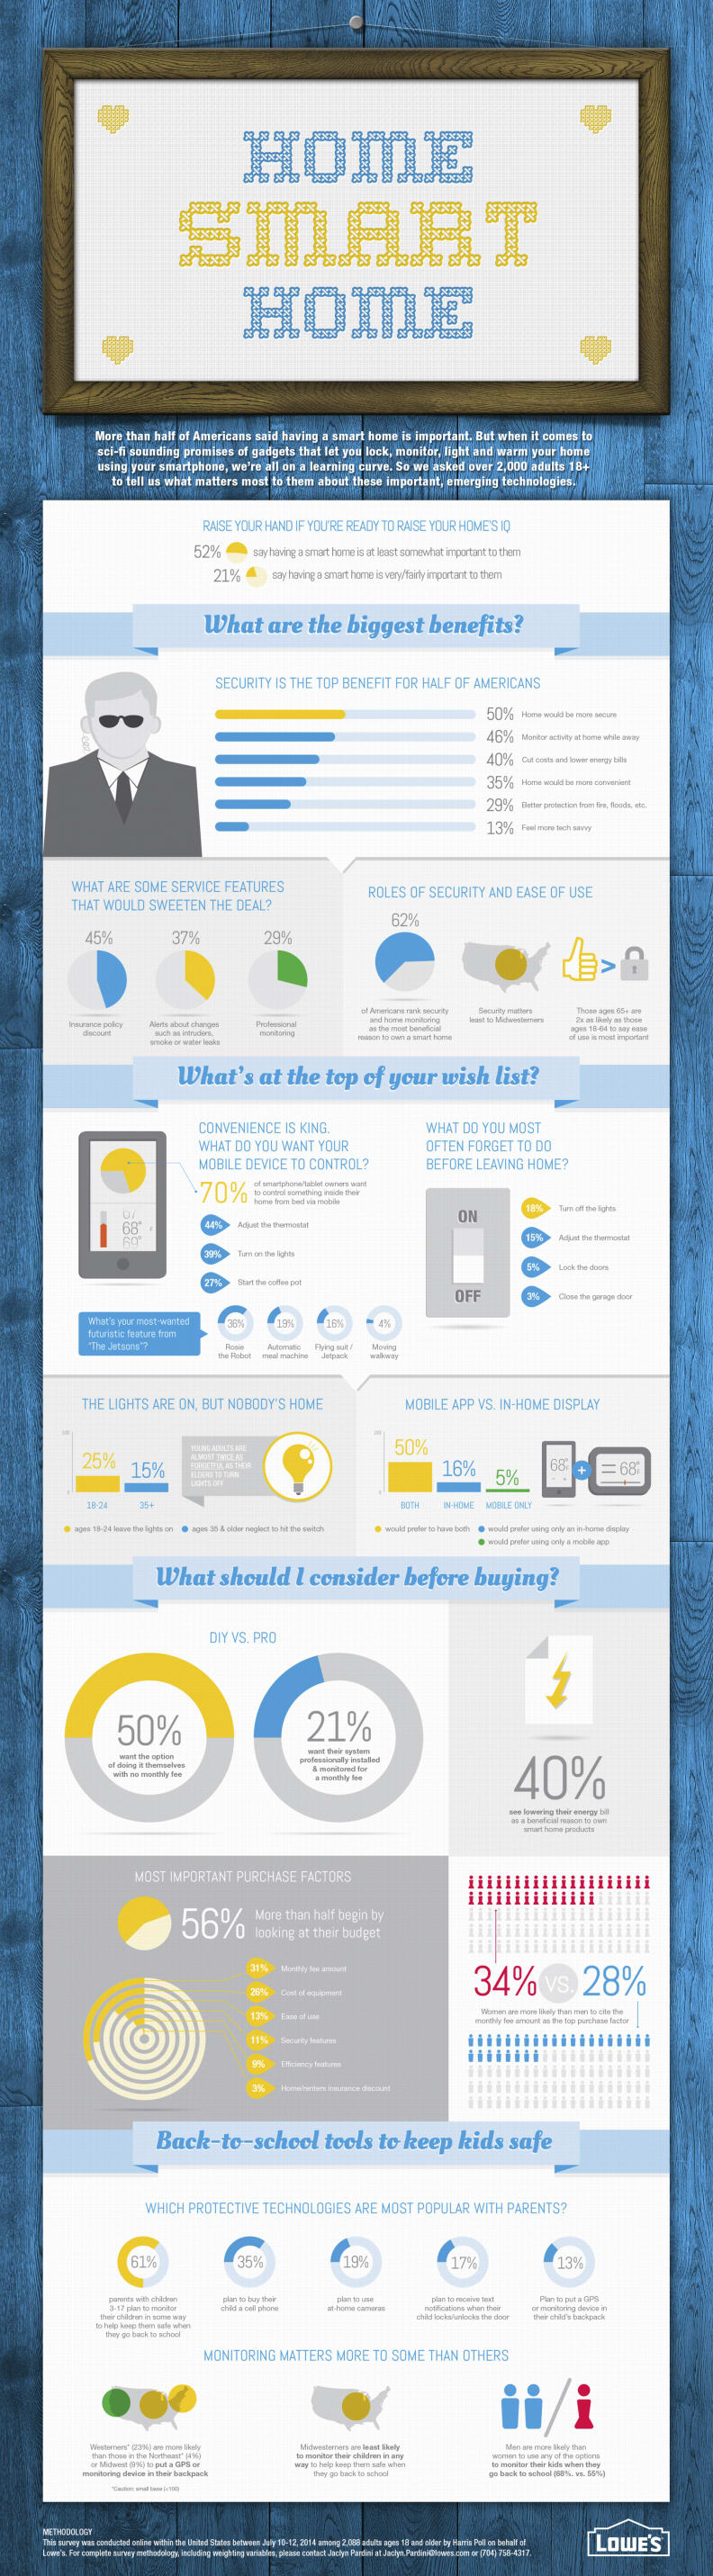 Lowe's 2014 Smart Home Survey Infographic